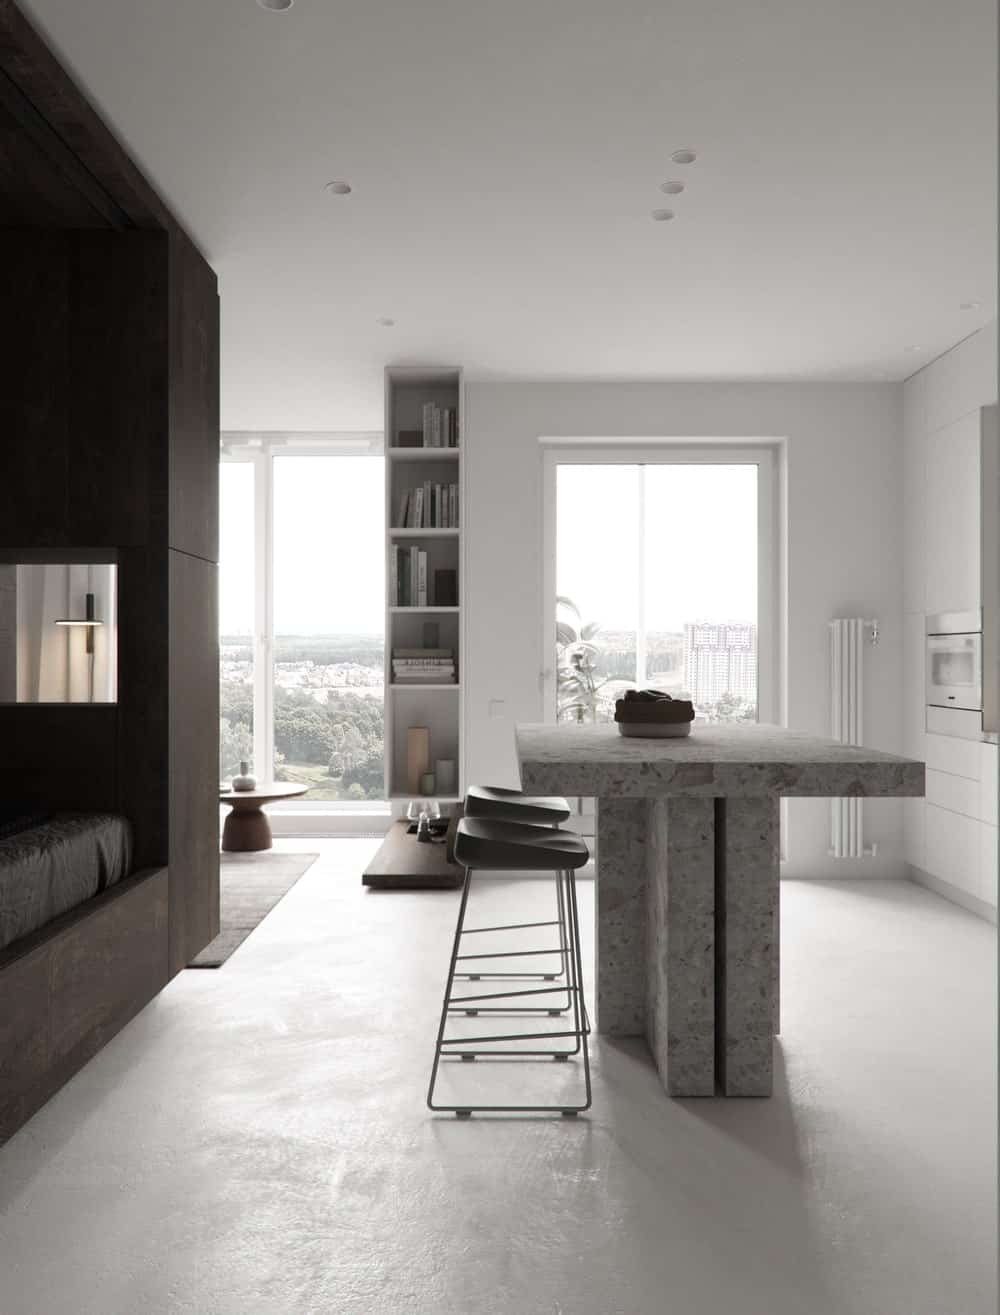 The bright tones are complemented by the natural lights coming in from the large window on the far side.